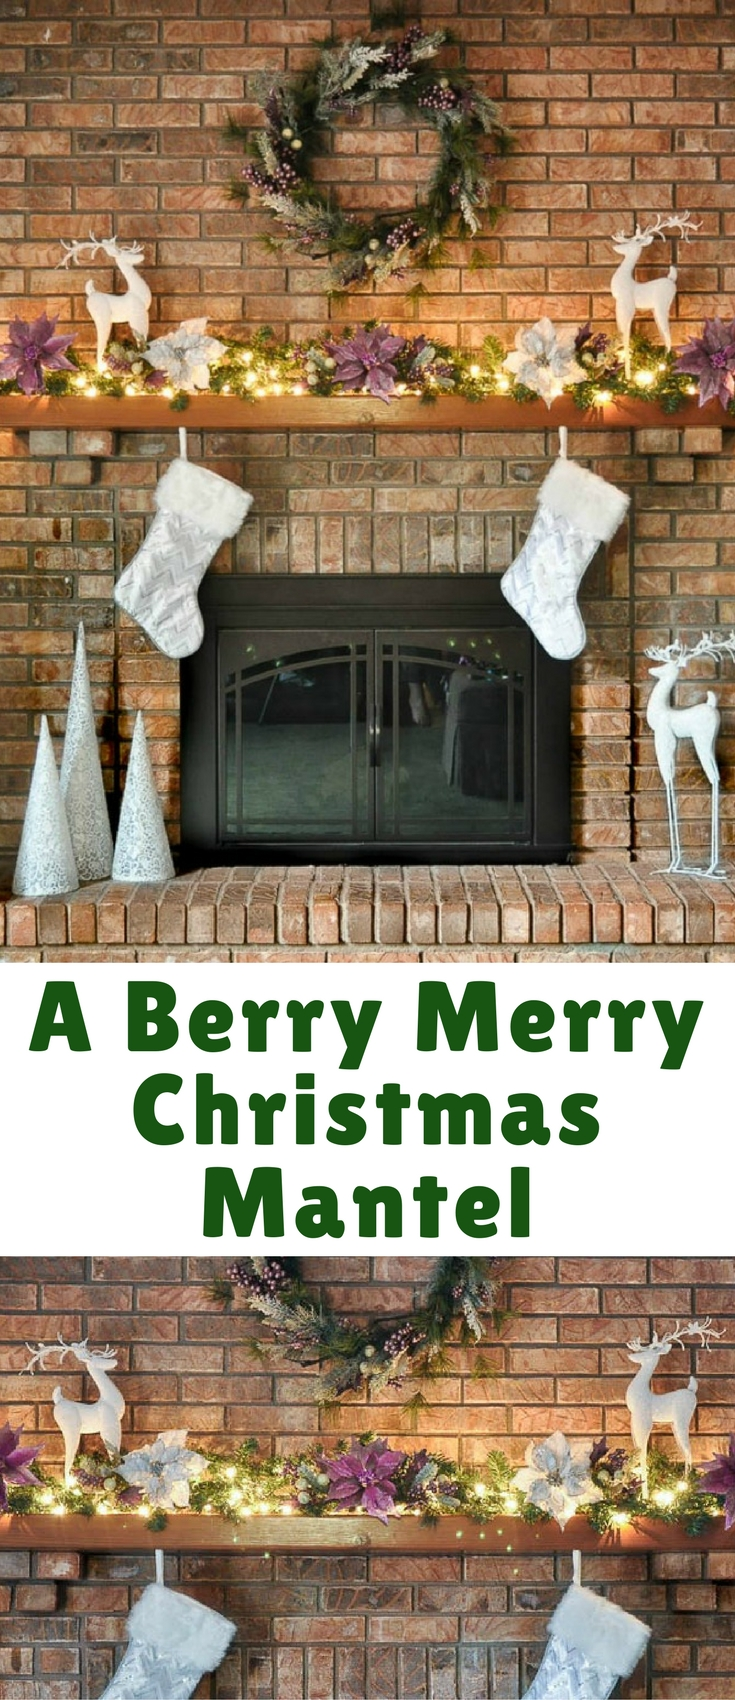 BREAKING AWAY FROM THE TRADITION RED WITH A BERRY MERRY CHRISTMAS MANTEL!